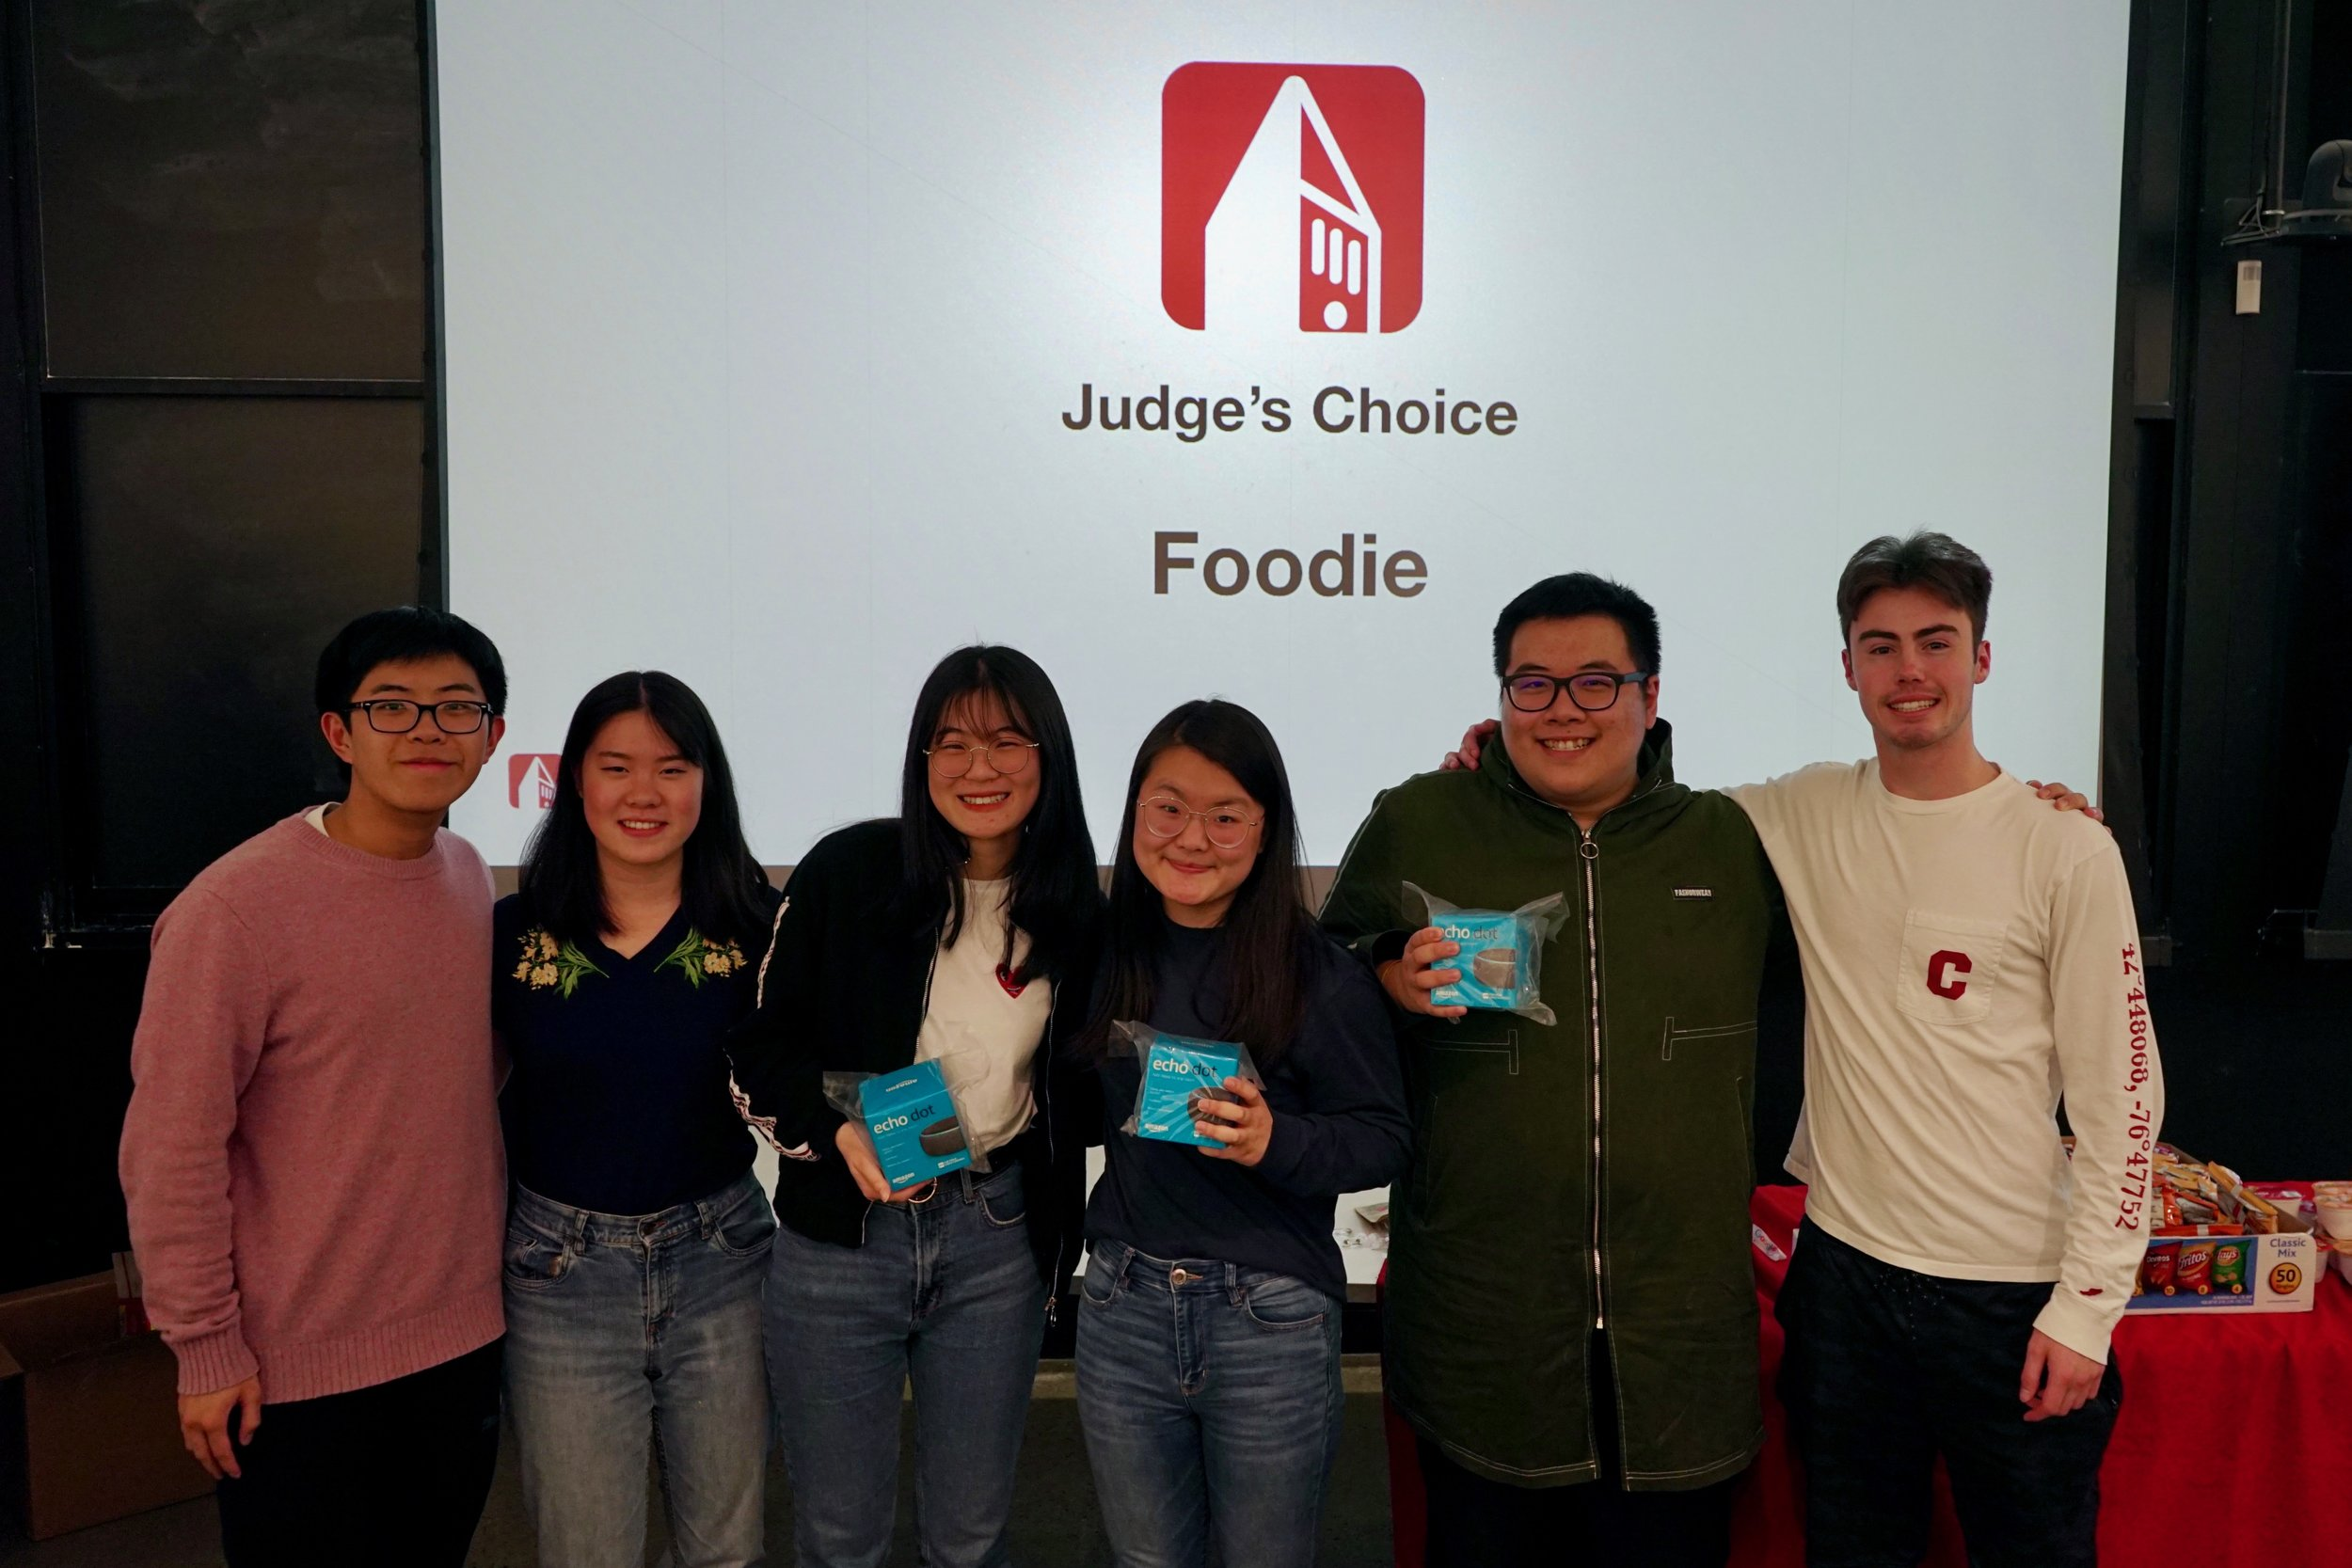 Kevin Chan (TA), Cindy Huang (Design), Yuxuan Chen (iOS), Haiying Weng (iOS), Leo Liang (Backend), Conner Swenberg (TA)